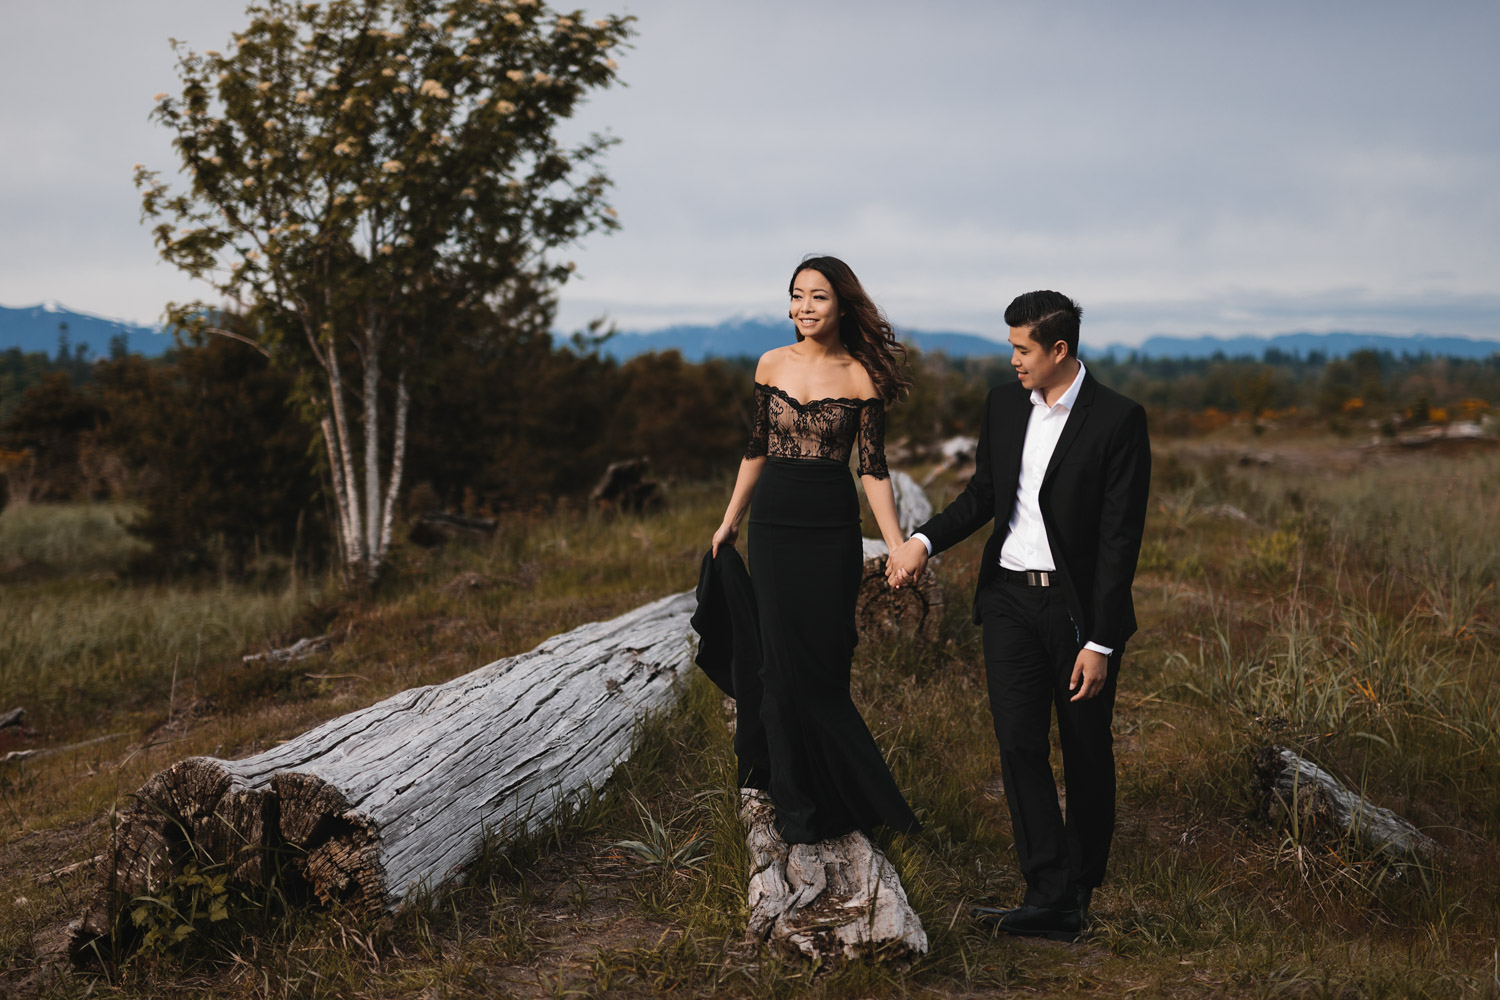 windy engagement photography during sunset at iona beach in richmond bc